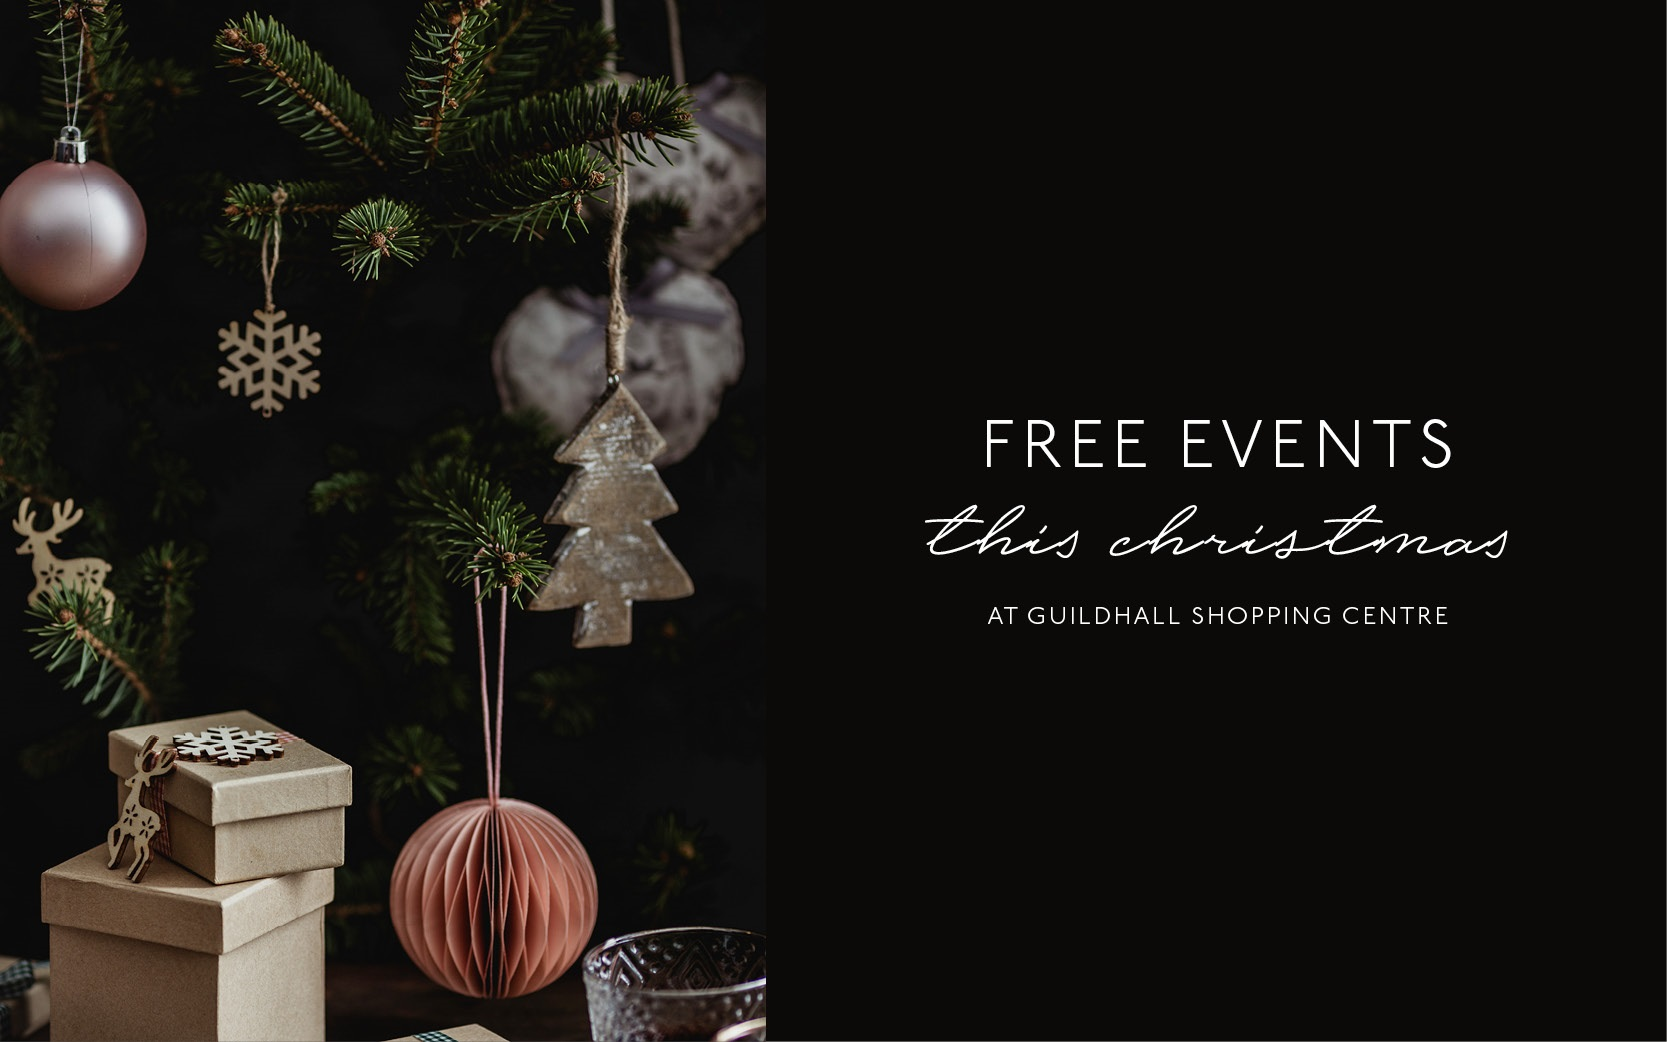 FREE EVENTS THIS CHRISTMAS CHRISTMAS